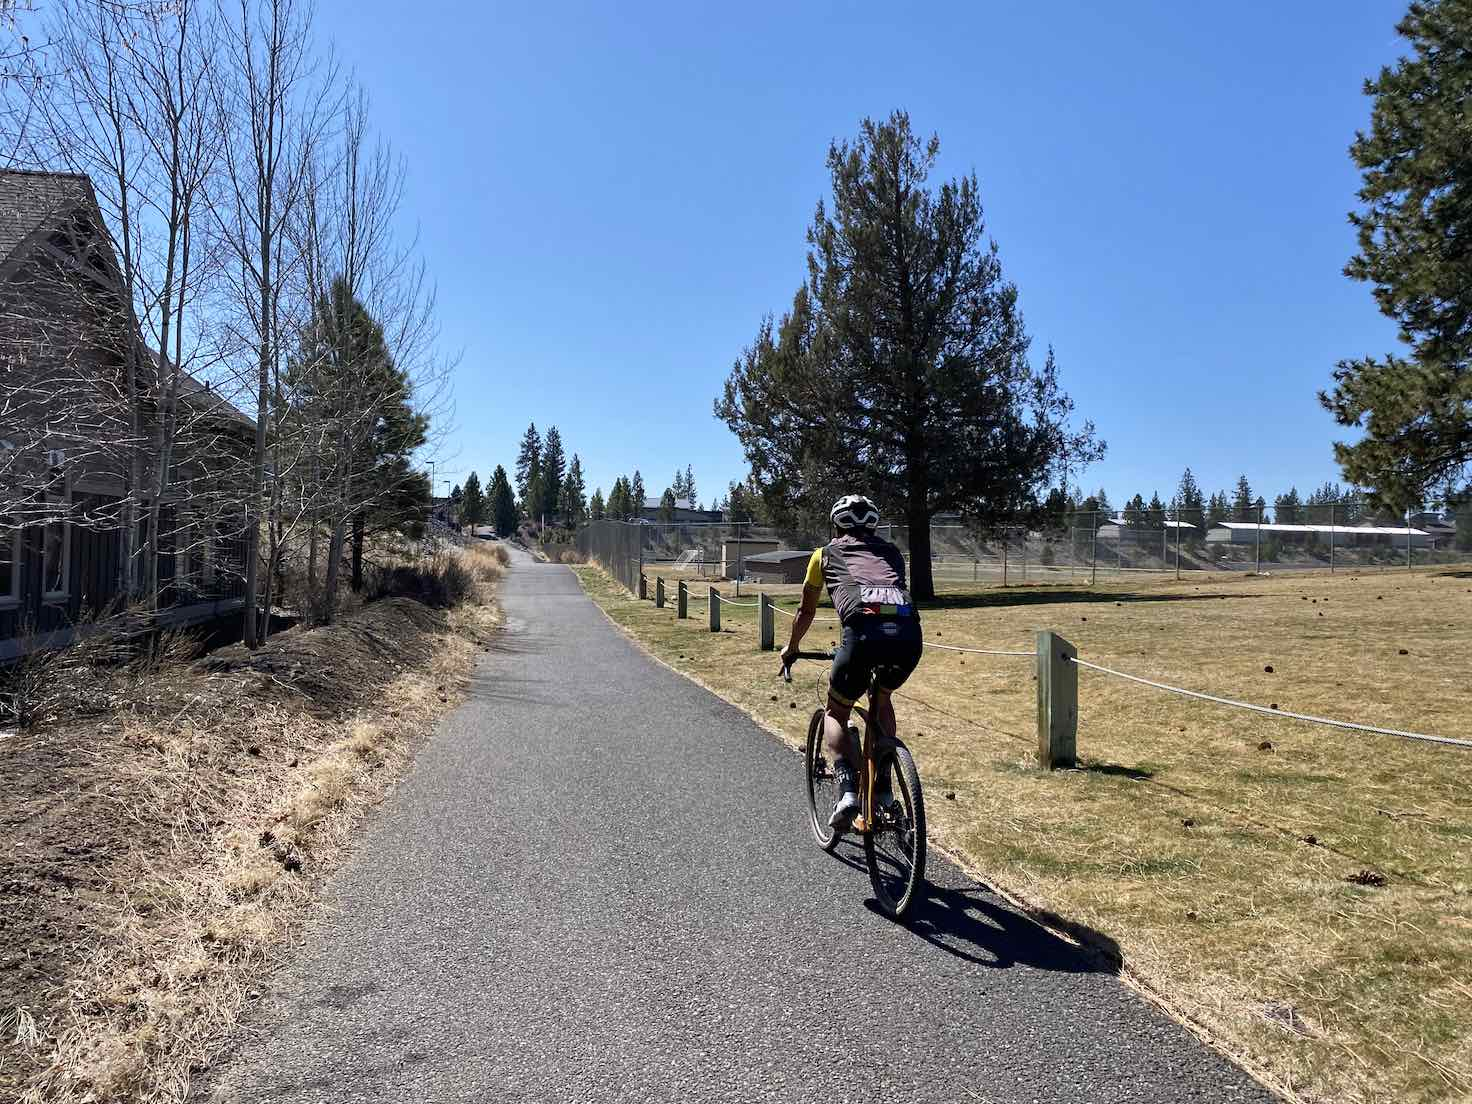 Cyclists on the Discovery pathed multi-use path in Bend, OR.